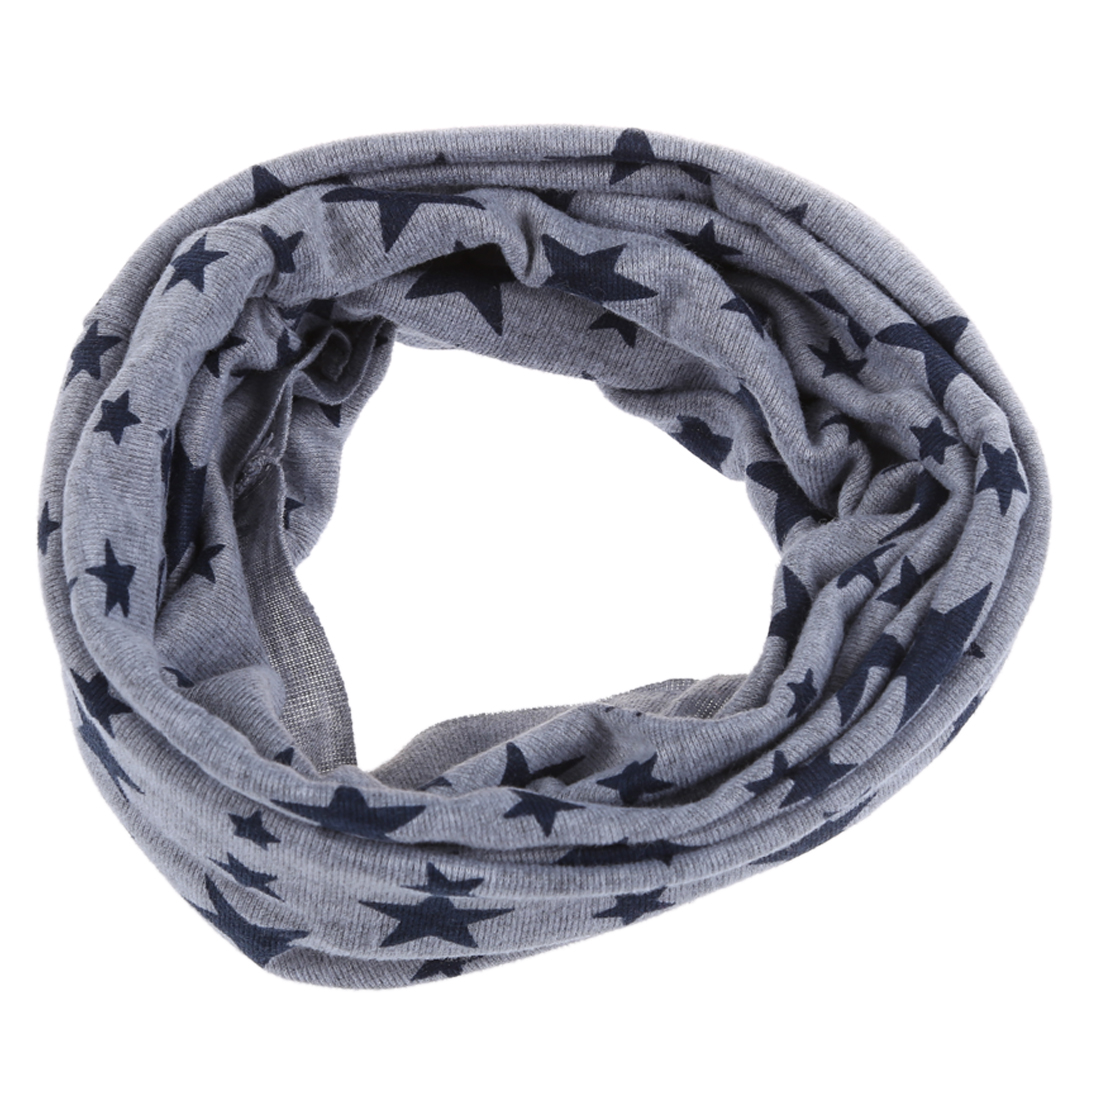 Unisex Babies Loop Wraps Five-pointed Star Knitted Wraps Winter Shawl Snood Neck Warmer Gray